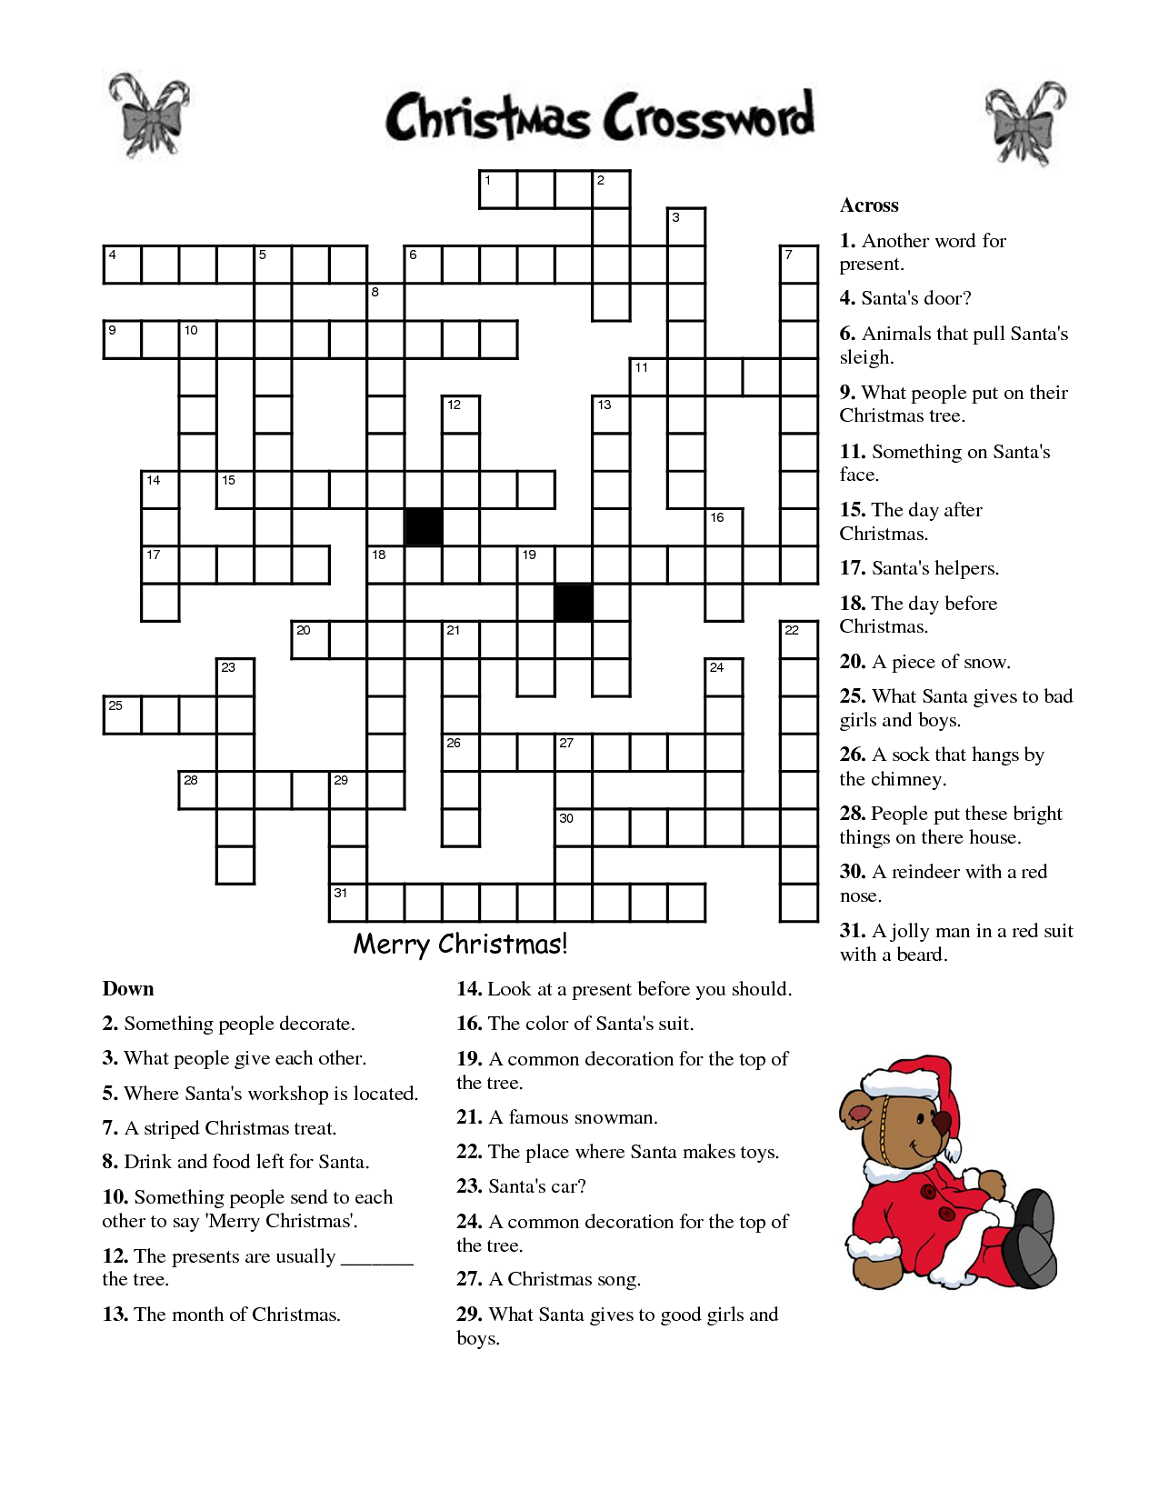 Printable Crossword Puzzles 7 Year Old